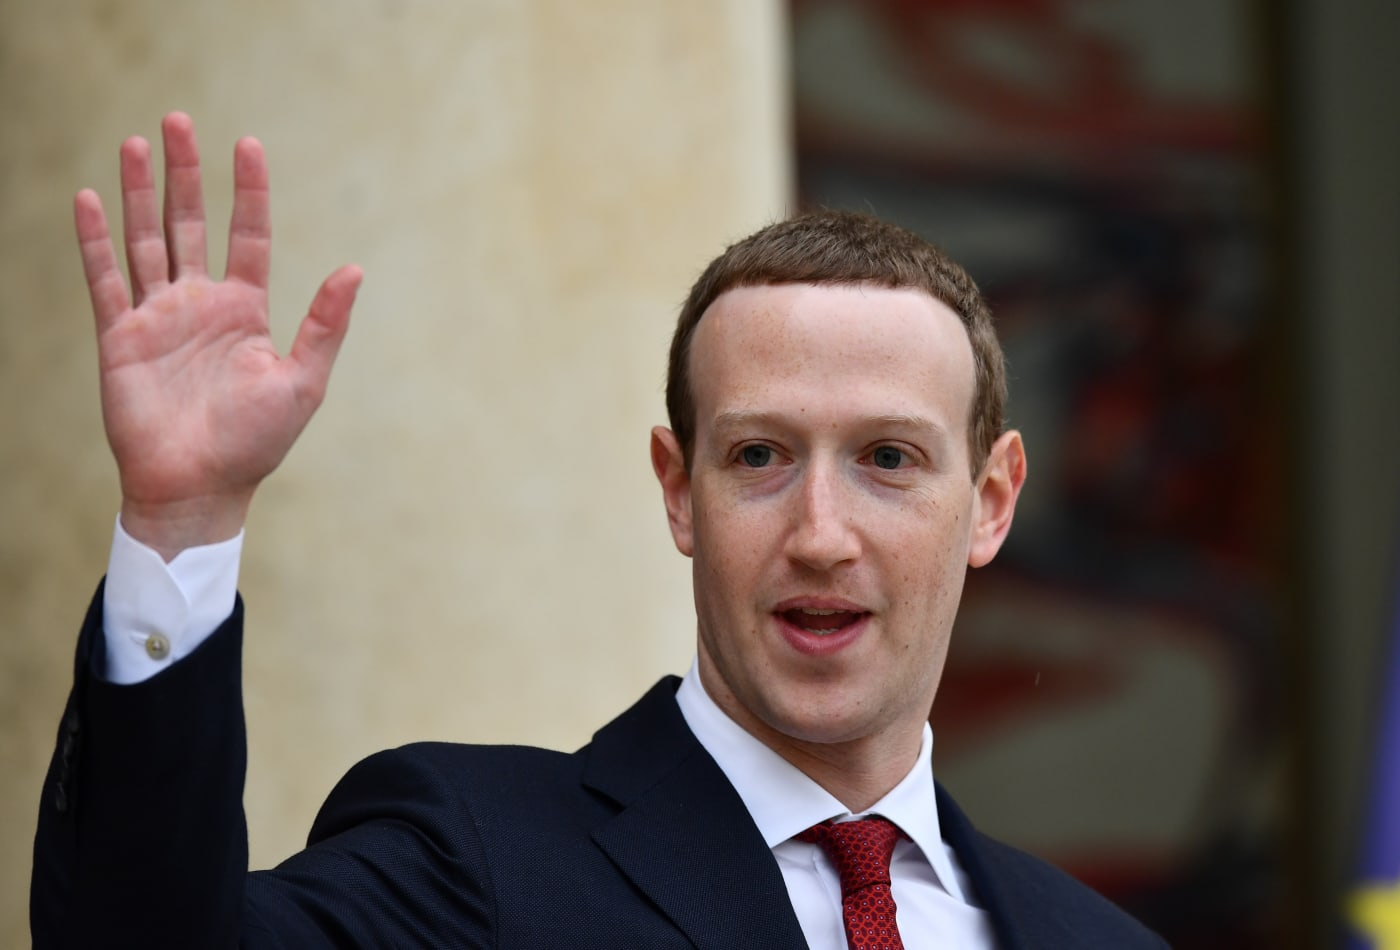 Facebook will prepare users for mail-in voting for 2020 election amid pandemic